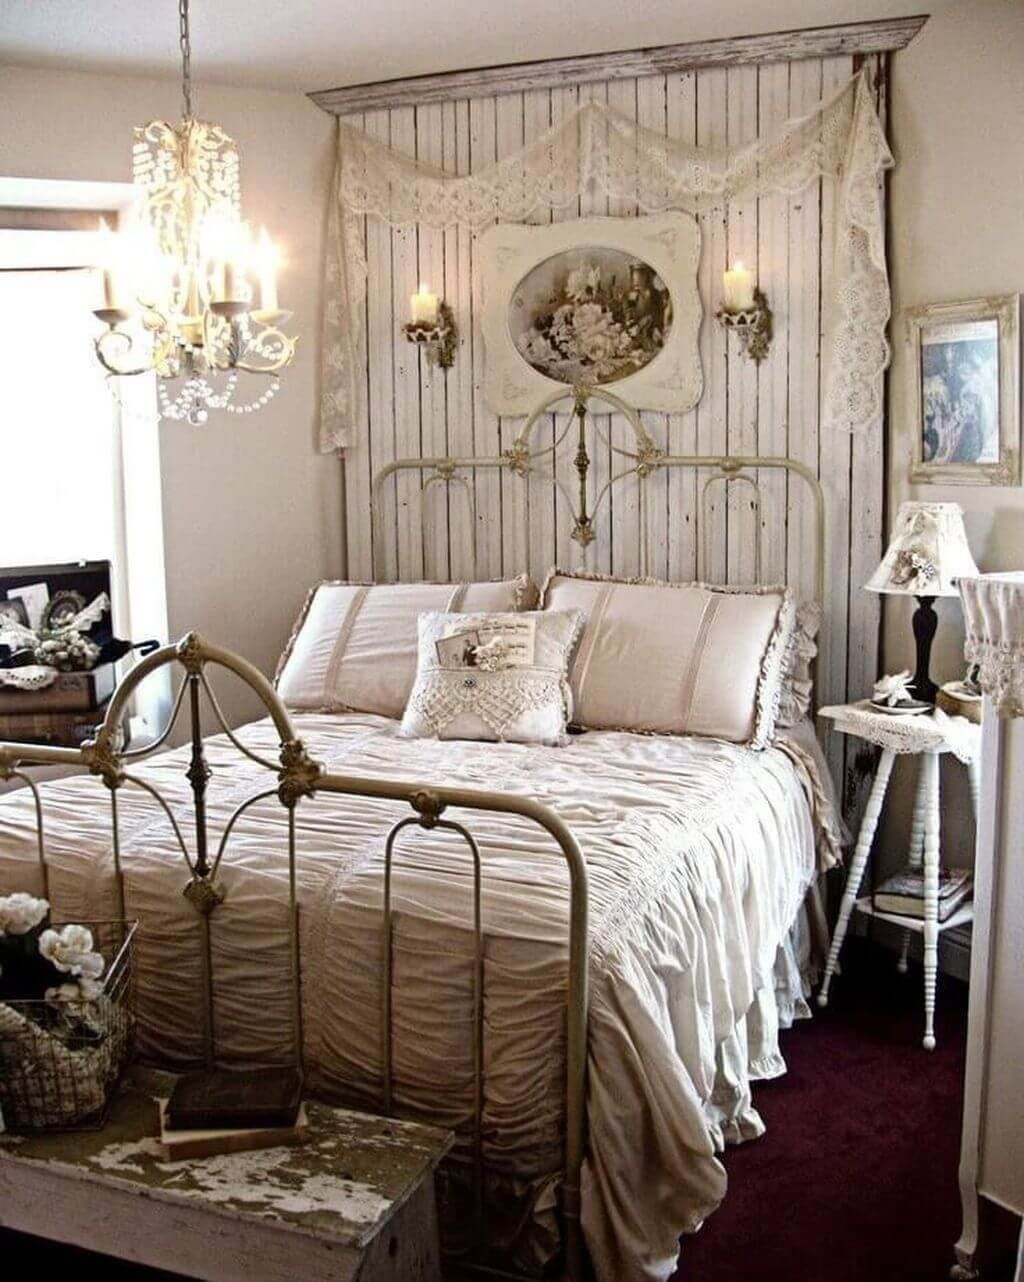 25 Fashionable Shabby Chic Bedroom (All Are Stylish!) - Q11